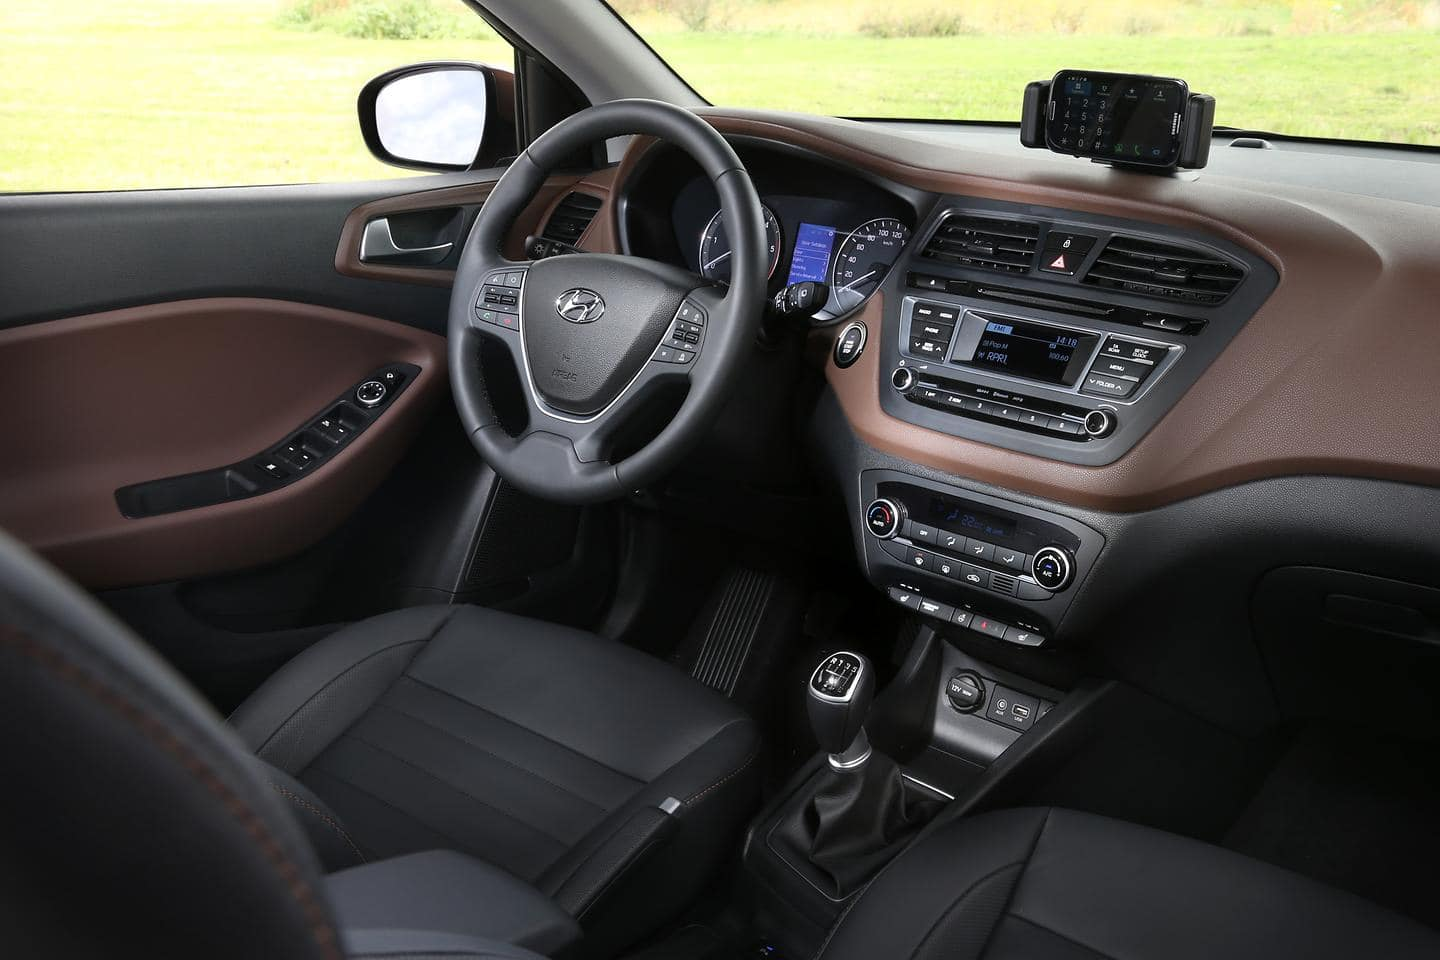 New Generation i20 interior image (3)